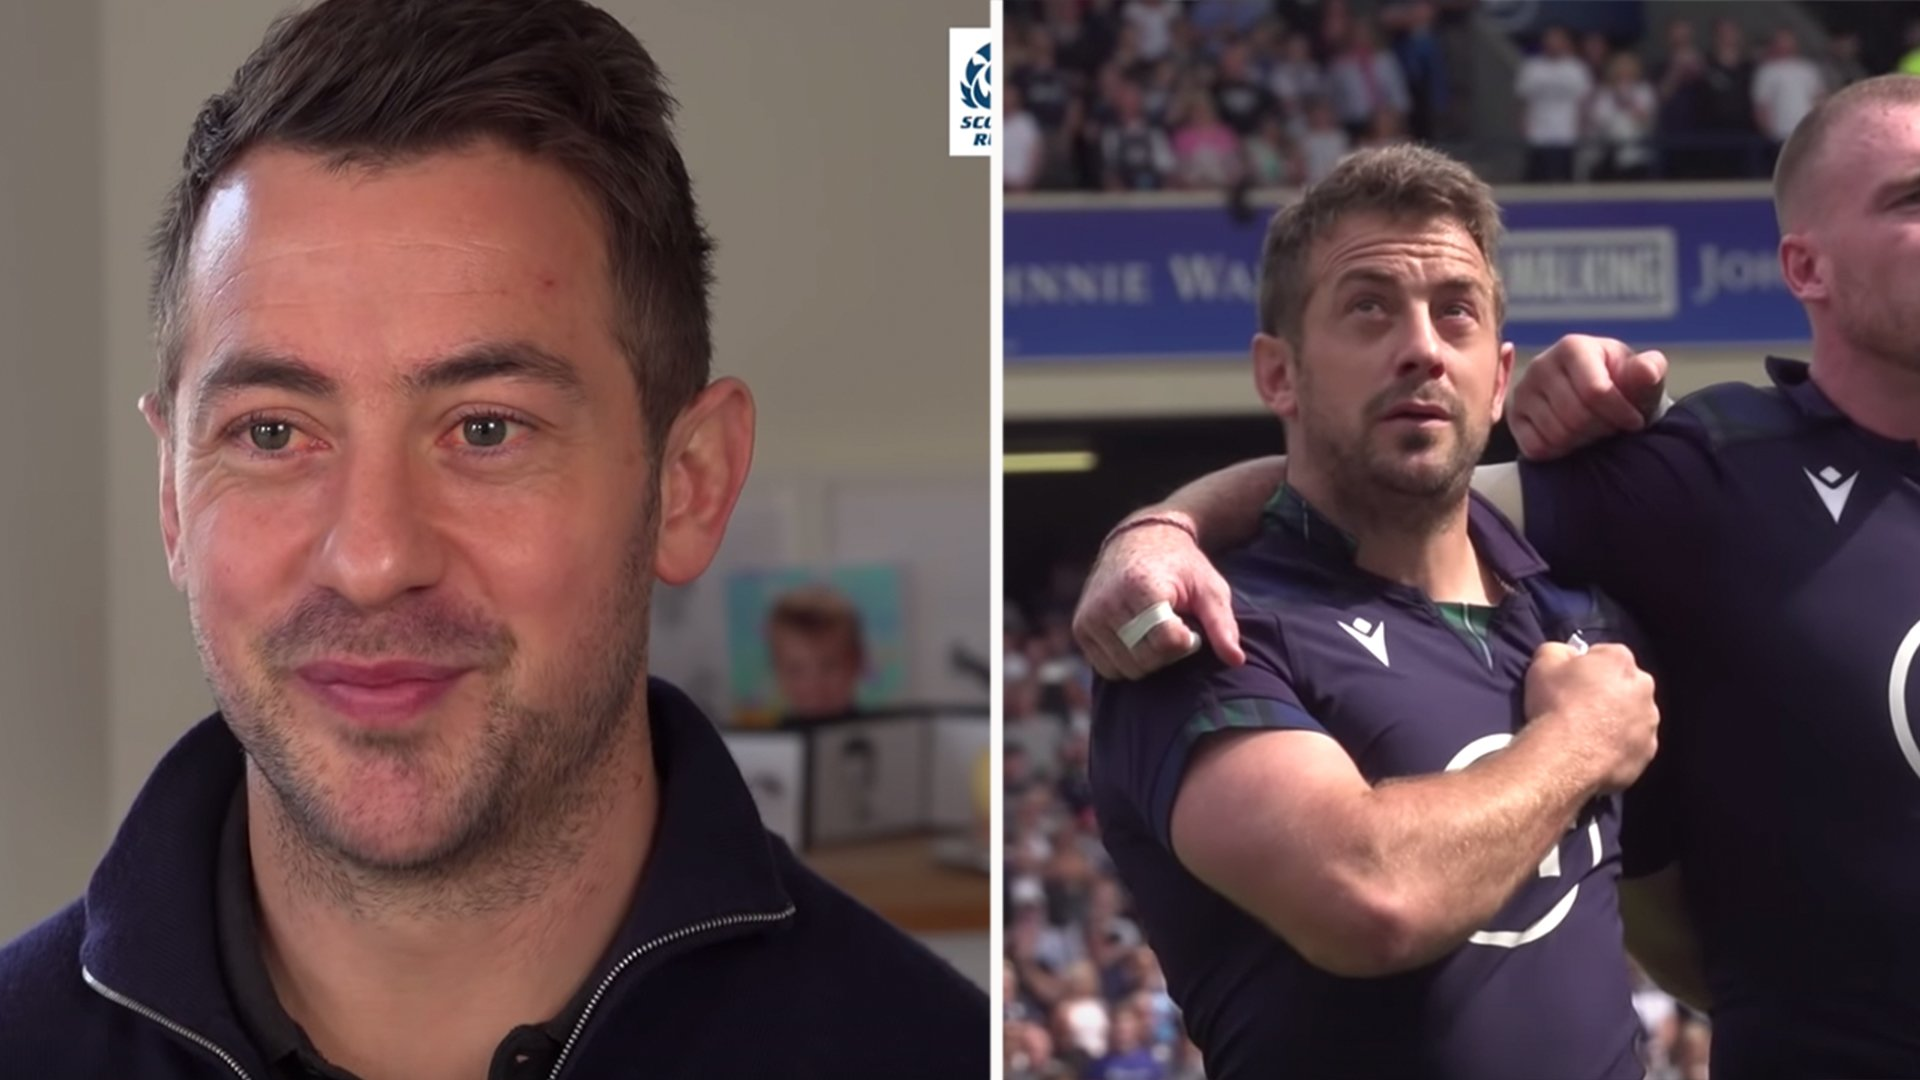 Scotland release a surprisingly emotional tribute to retiring International Greig Laidlaw